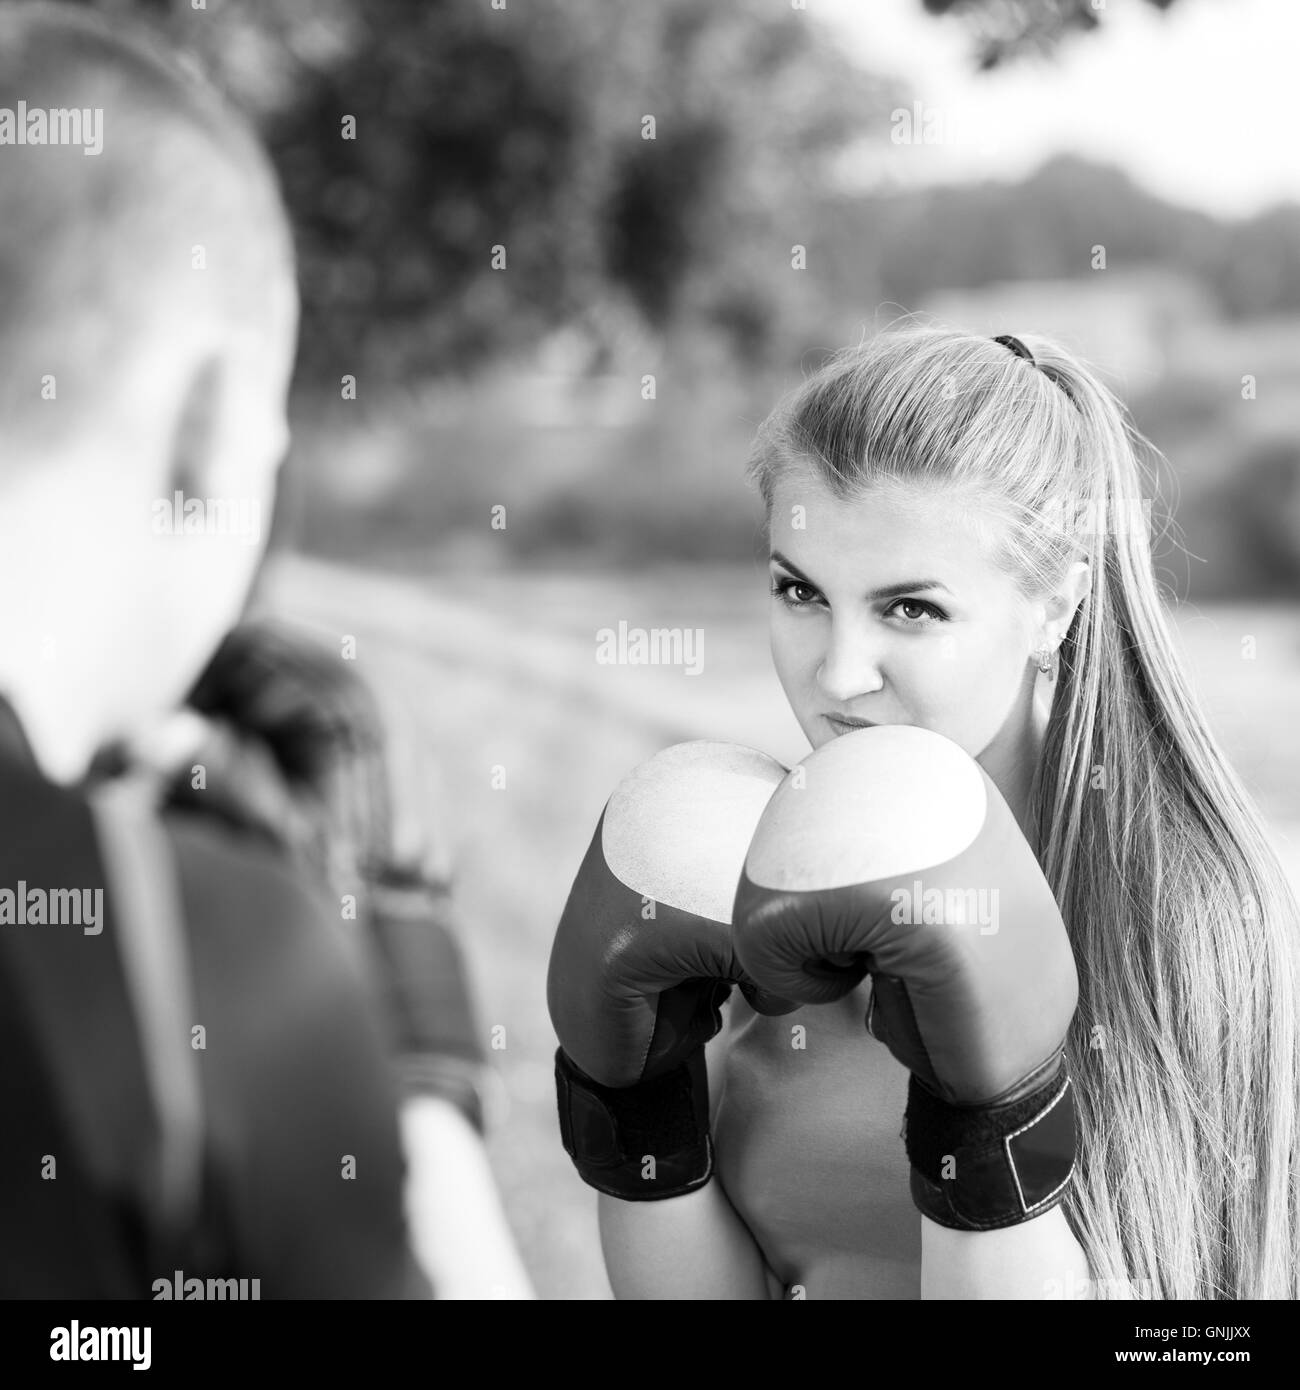 Young sporty woman training boxing with trainer at the park. Fitness outdoors workout black and white image - Stock Image